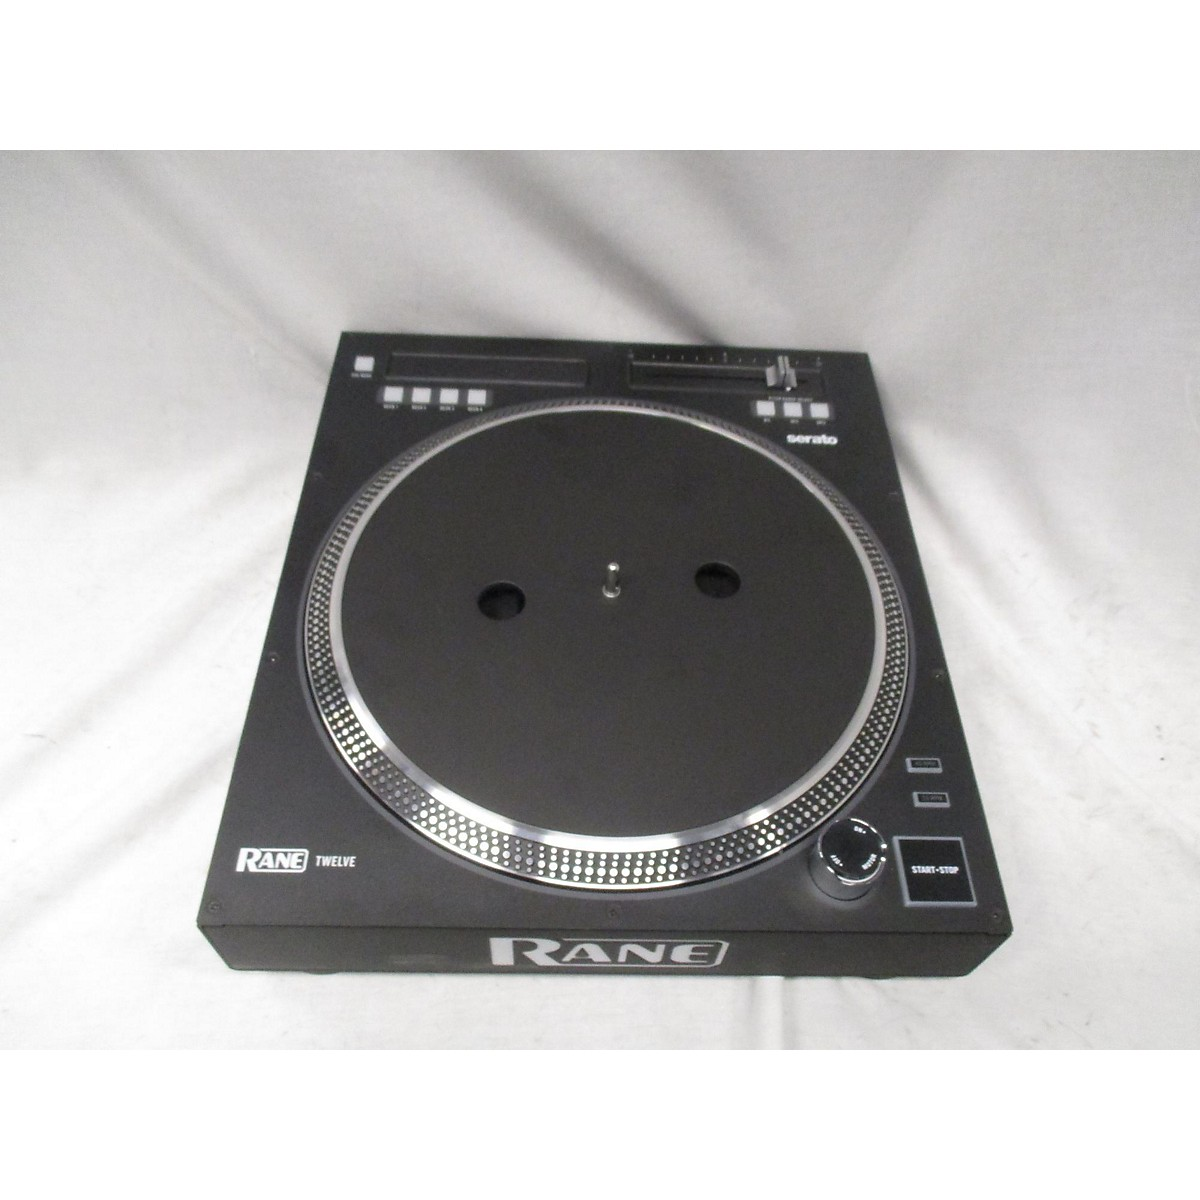 Rane Twelve USB Turntable